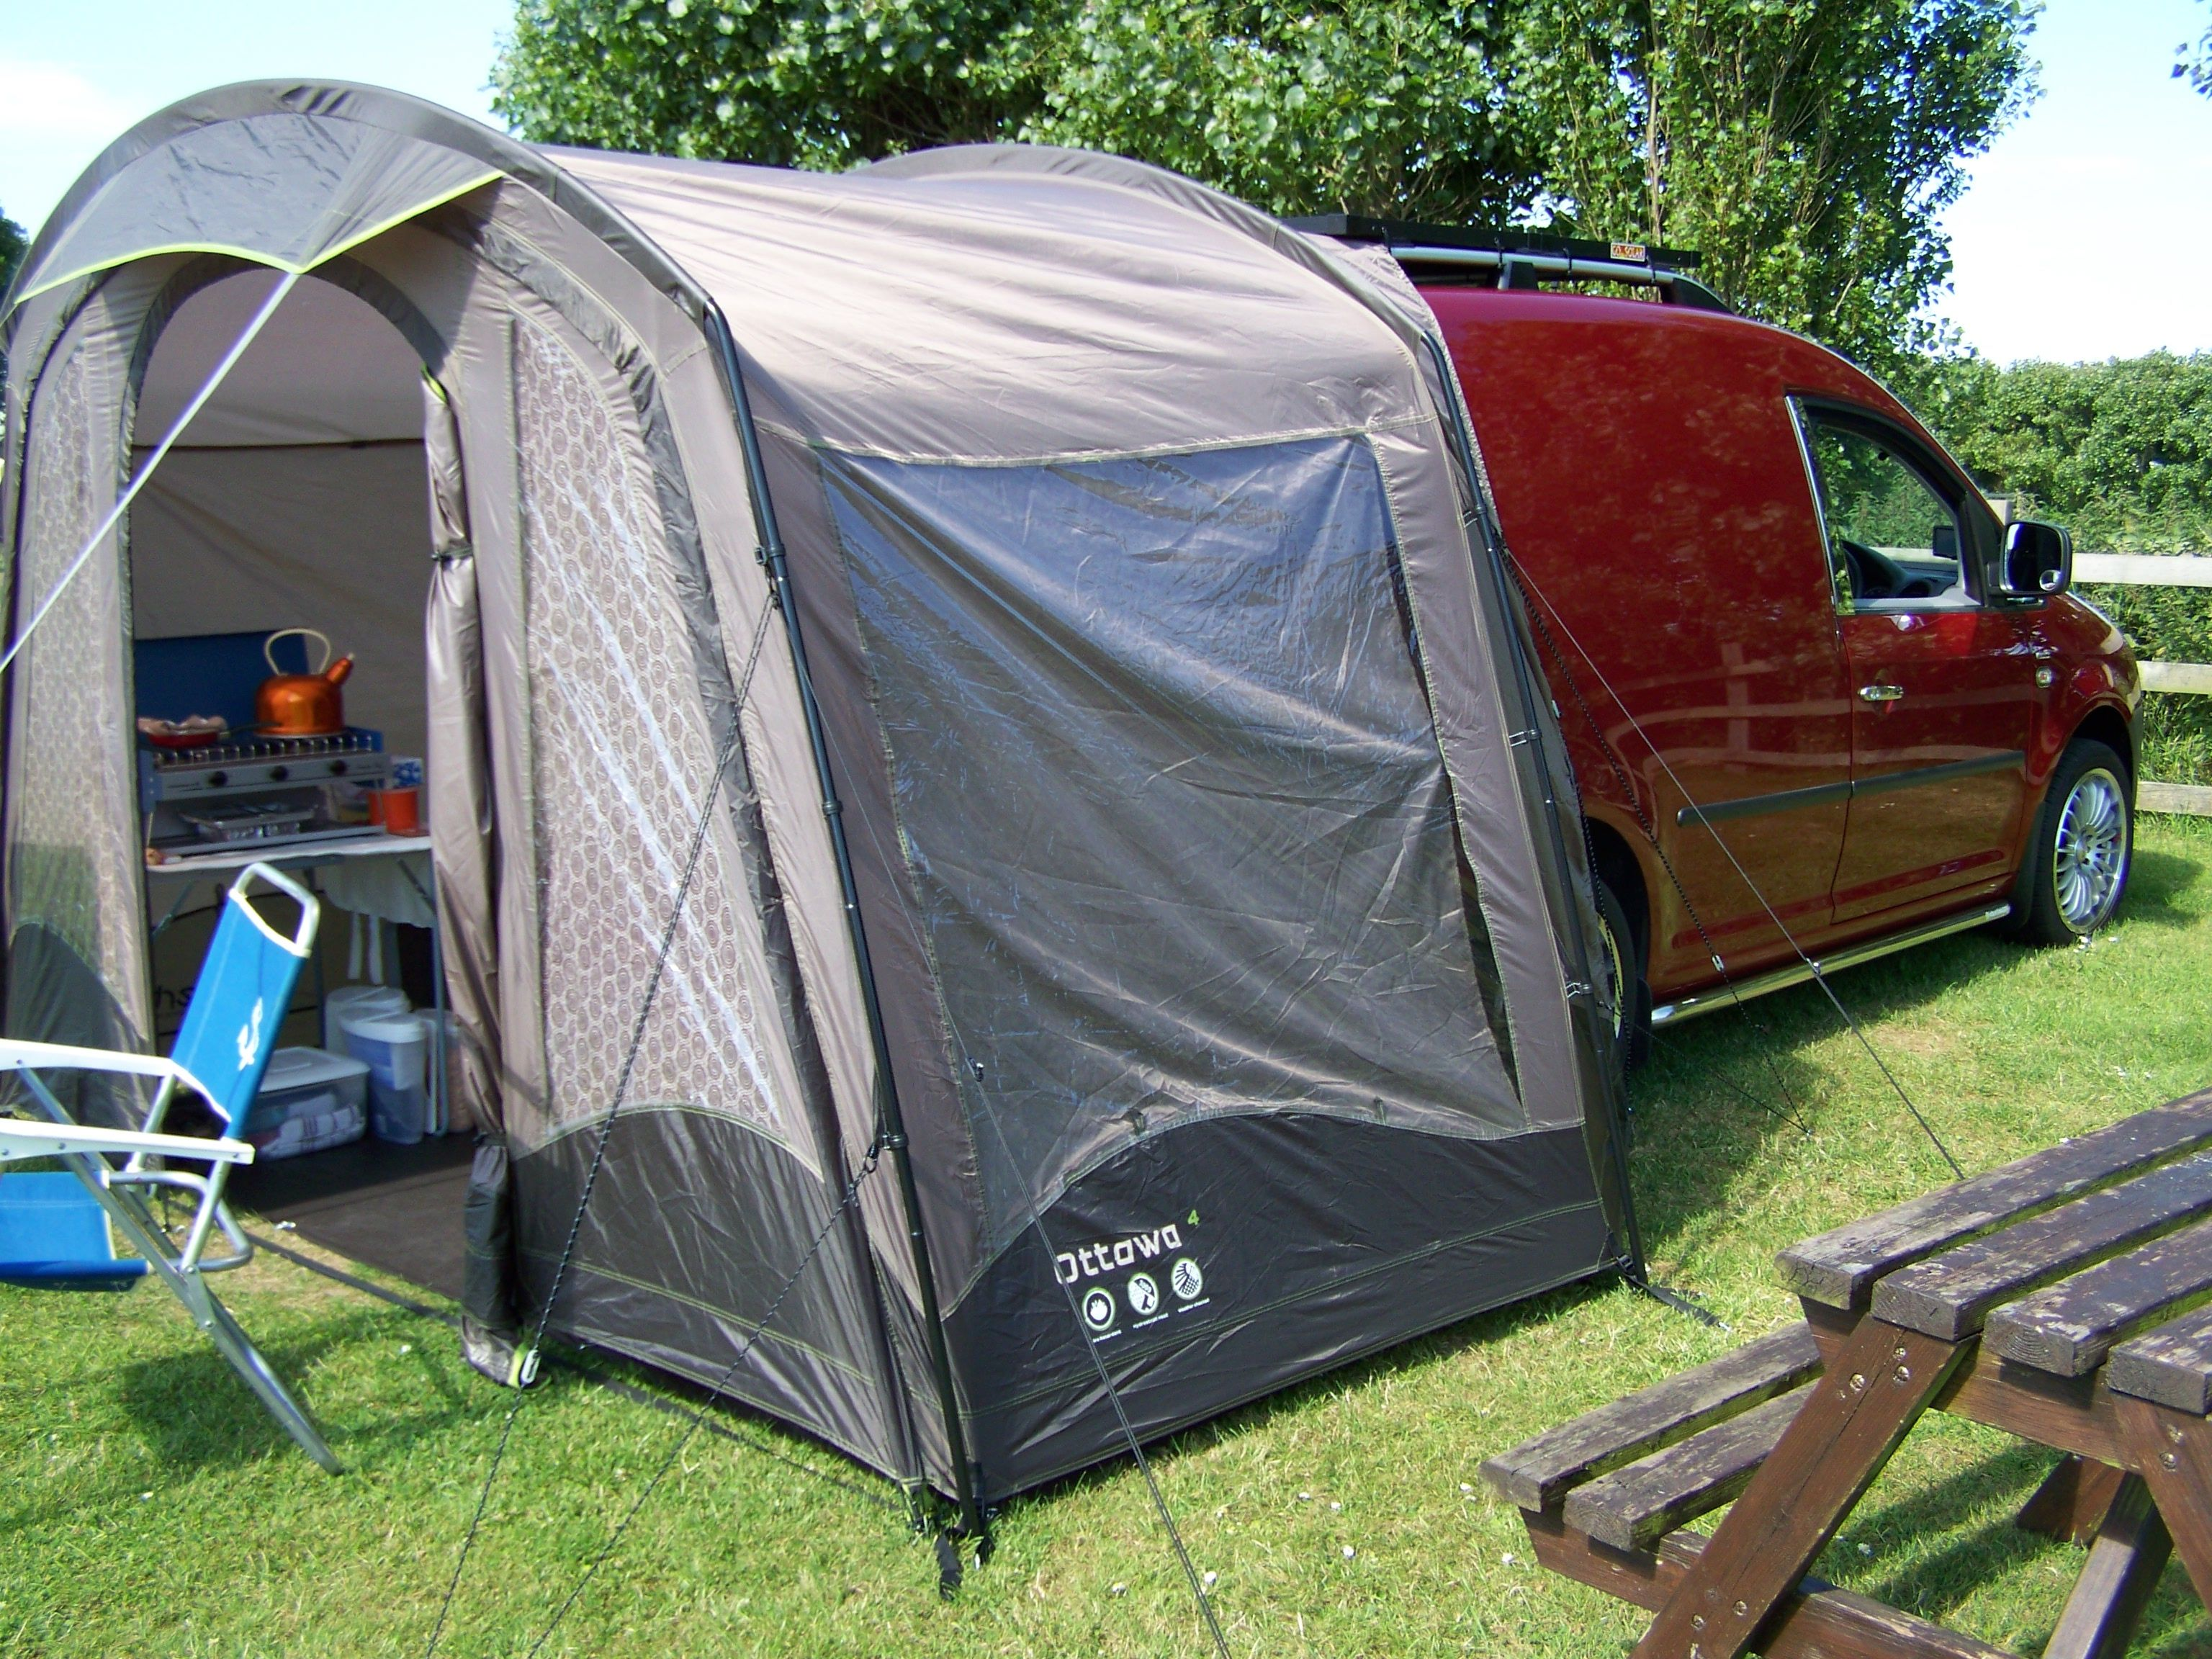 VW CADDY SOLAR CAMPER Inside The Awning Cooking Area Can Be Seen There